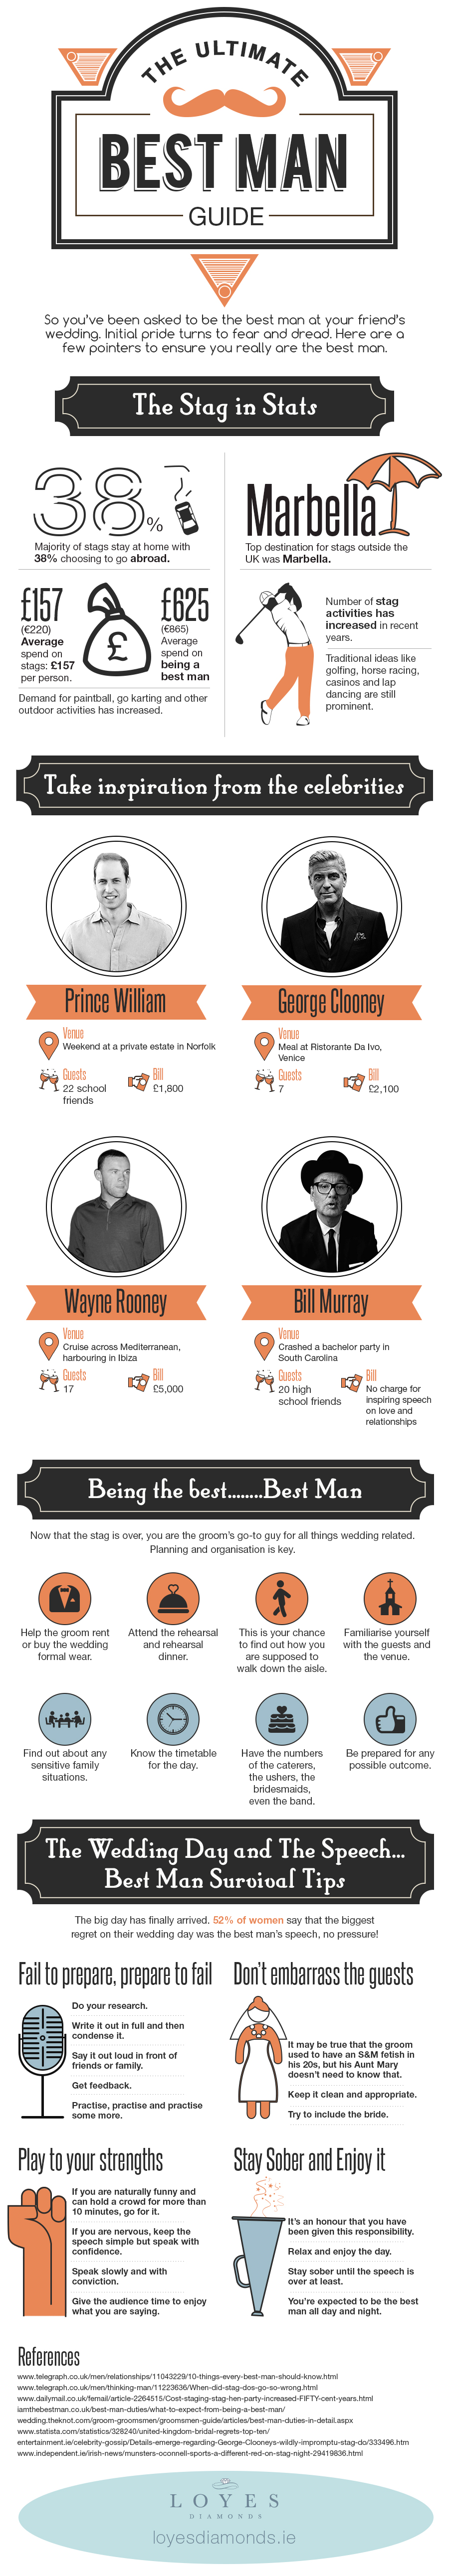 The Ultimate Best Man at Wedding Guide [Infographic]